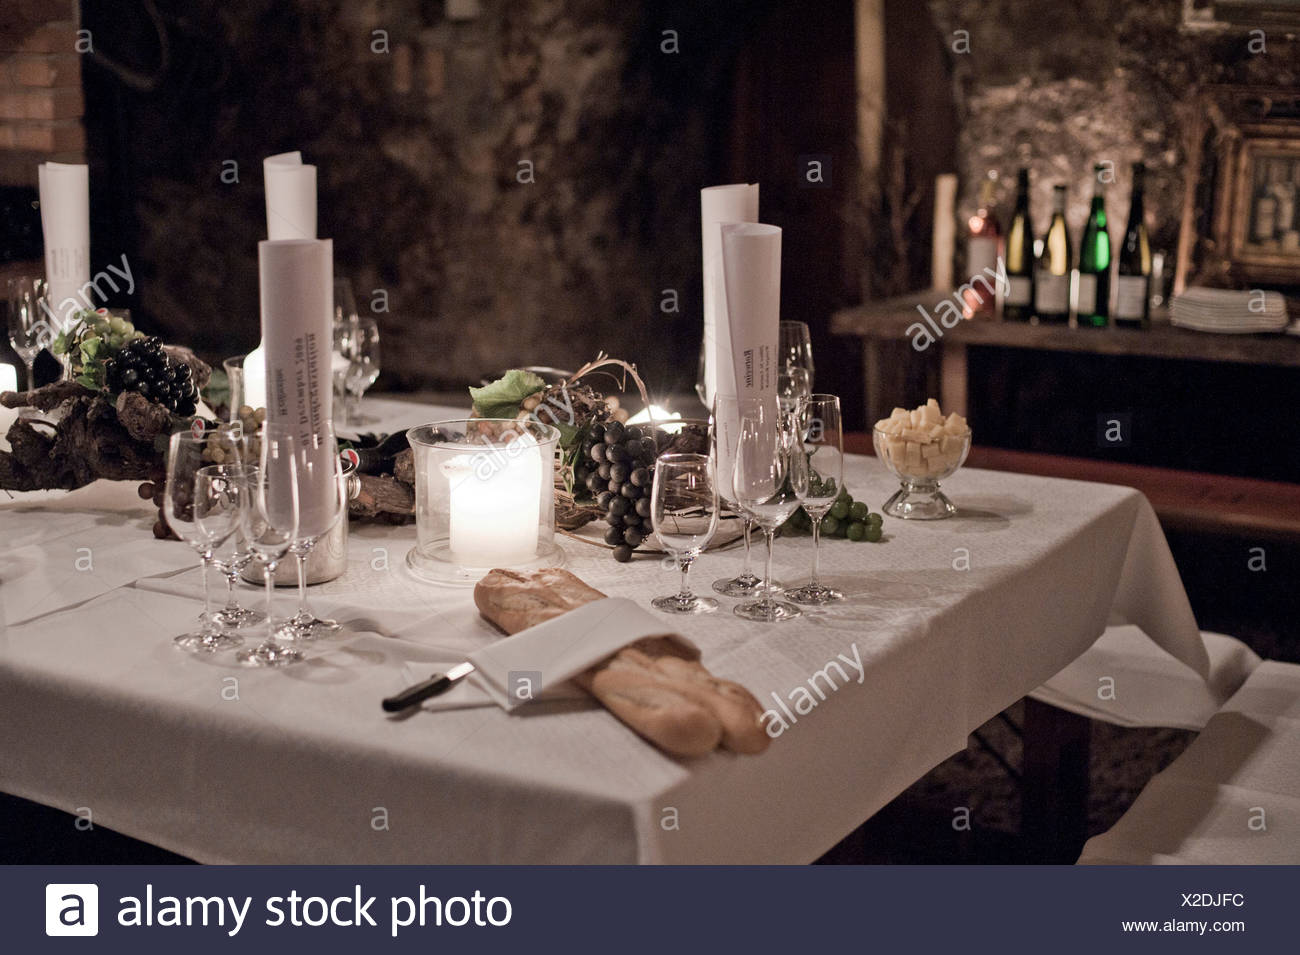 Classy set table in a wine cellar with baguette - Stock Image